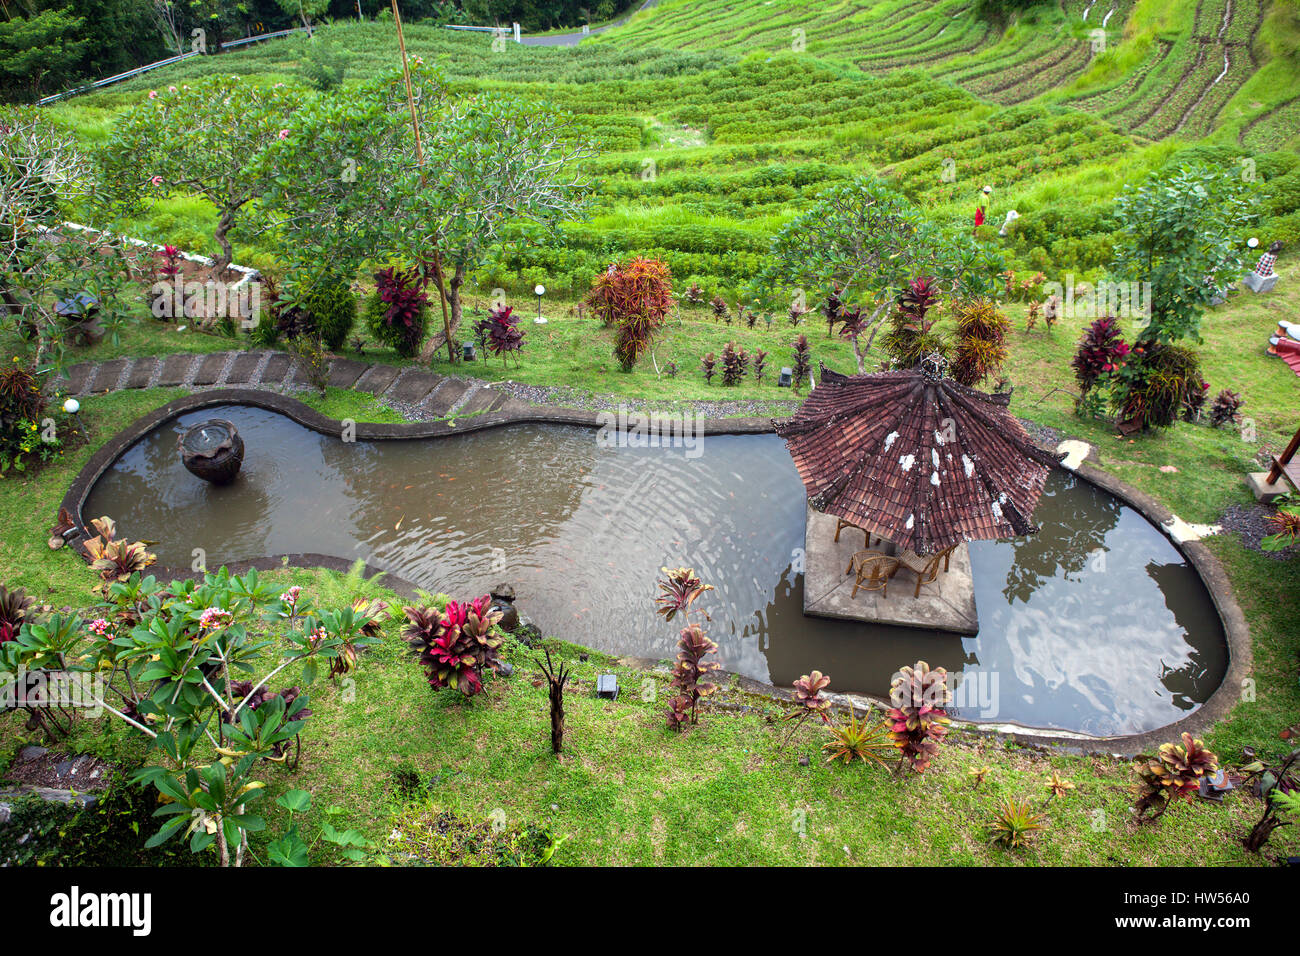 Artificial lake with fish in the garden and rice terraces in the background of the jungle, lush tropical greenery, - Stock Image